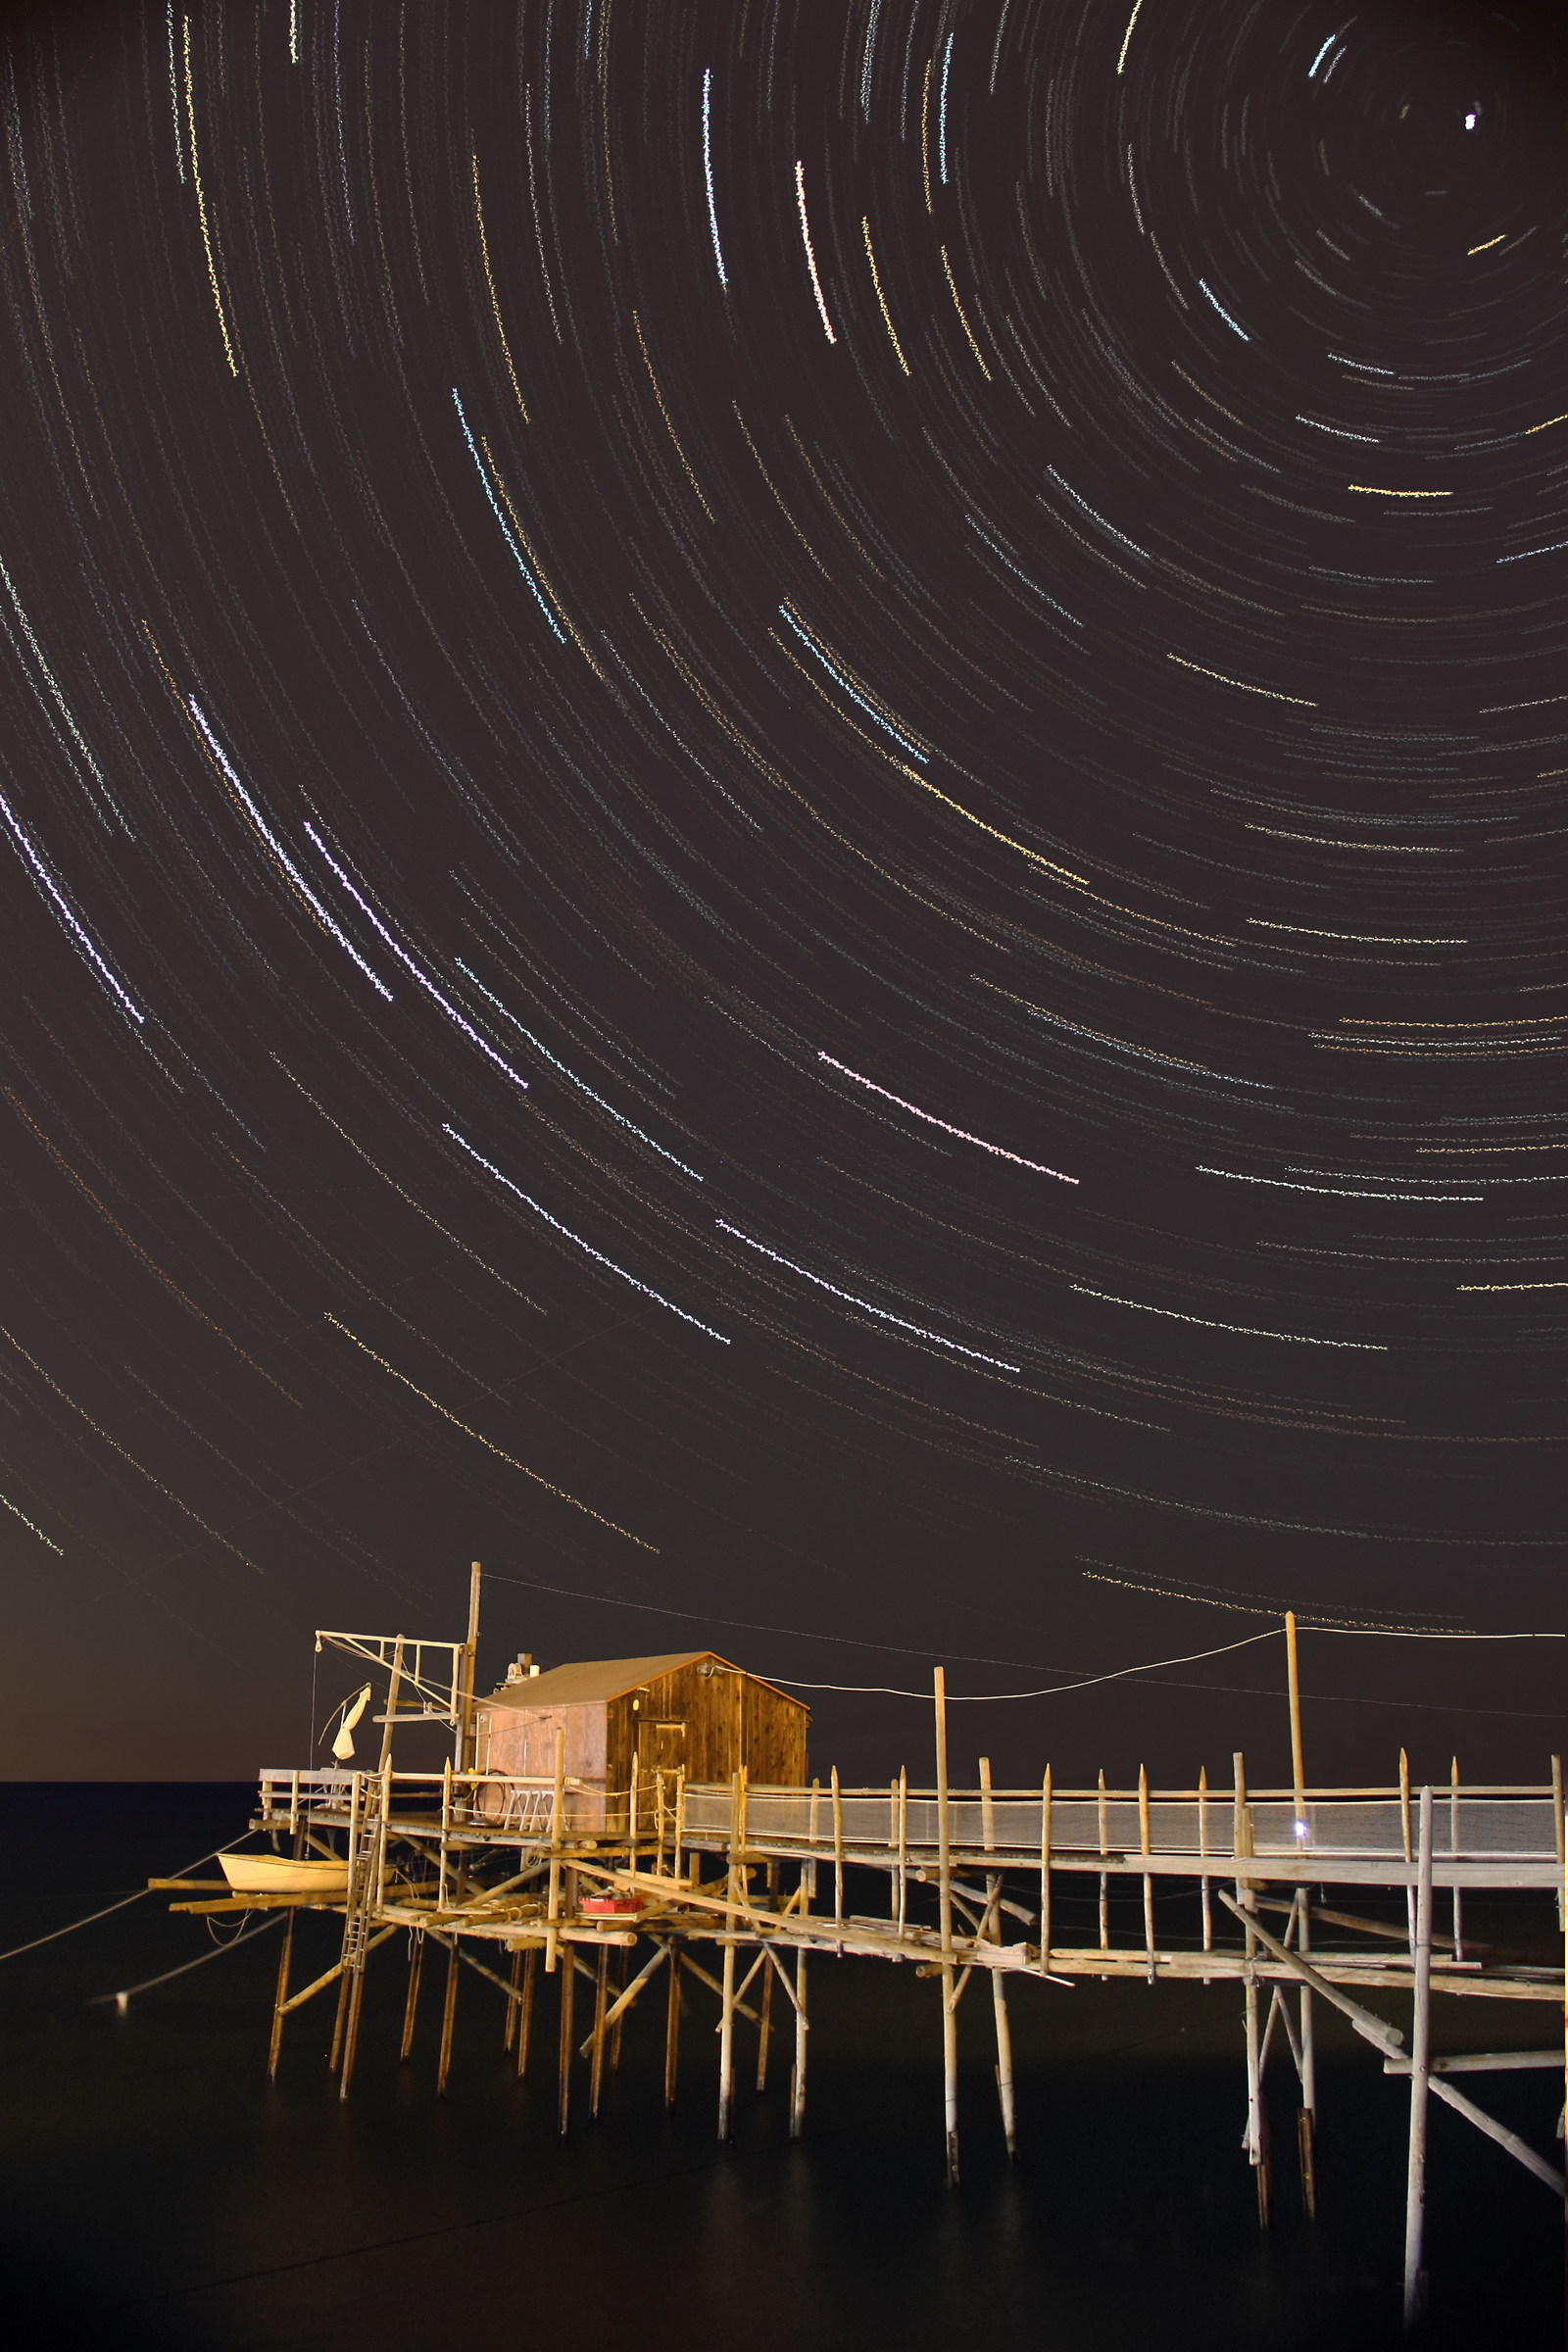 Startrail with trabot...